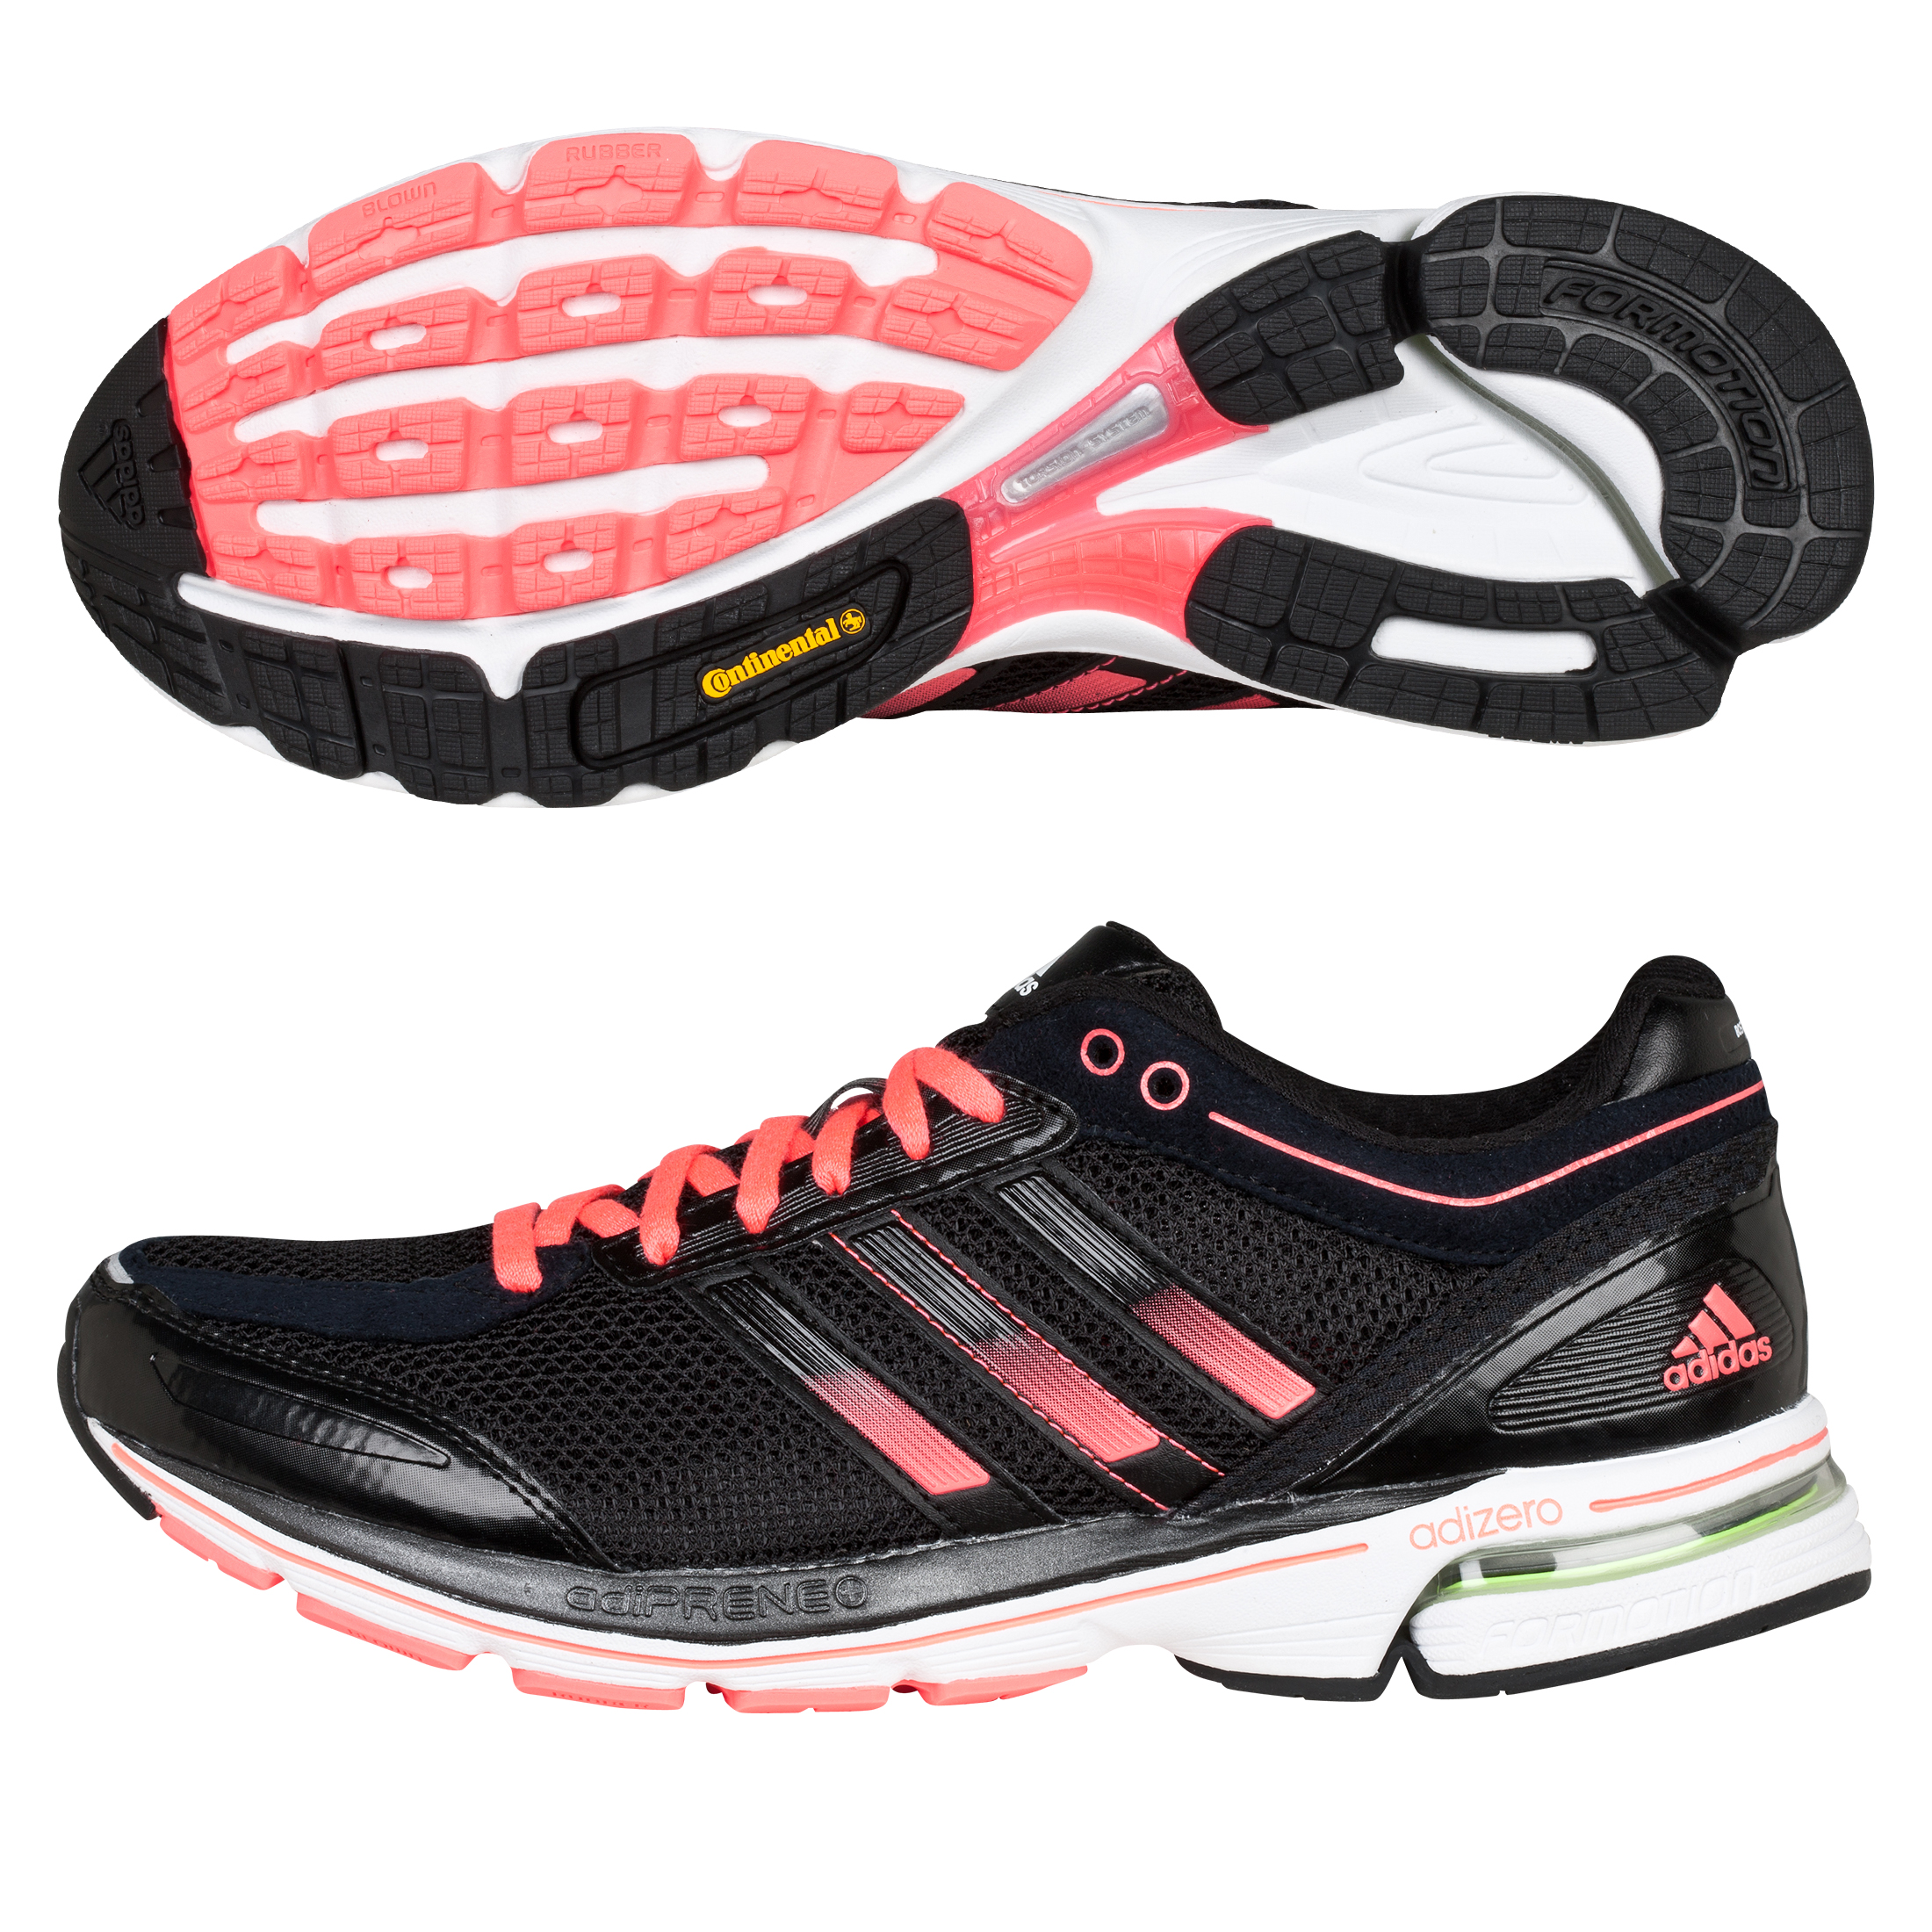 Adidas Adizero Boston 3 Trainer - Womens